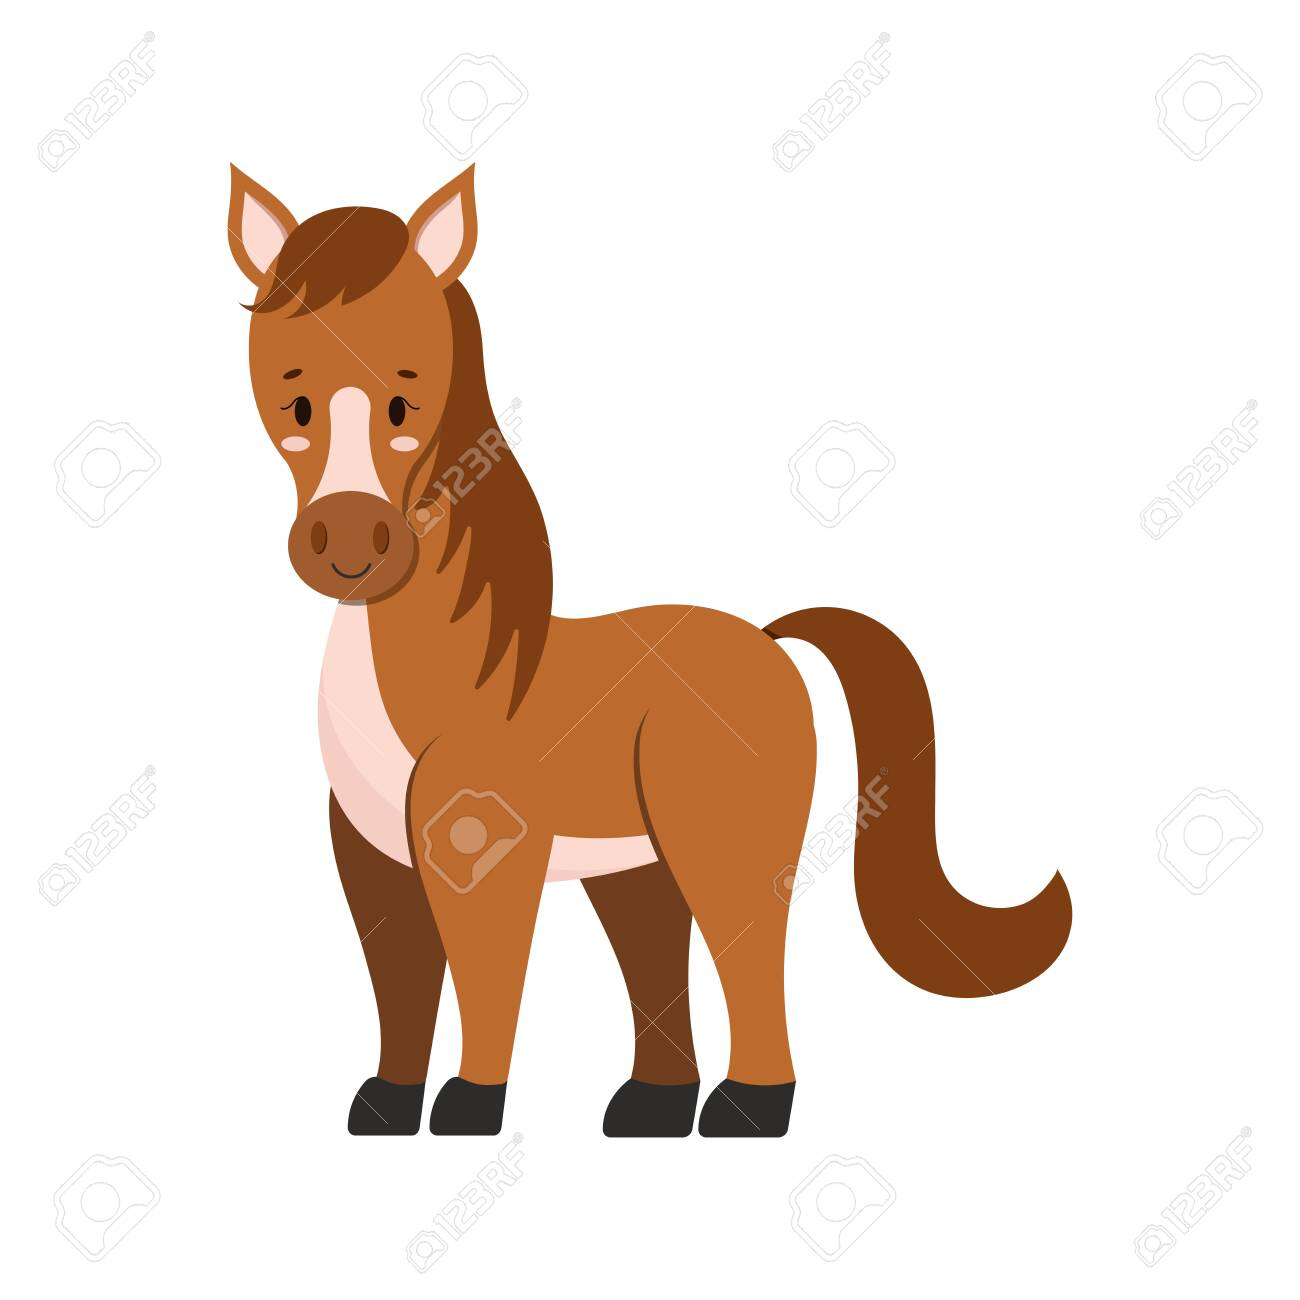 Cute Farm Horse Isolated On White Background Brown Color Funny Royalty Free Cliparts Vectors And Stock Illustration Image 147796879